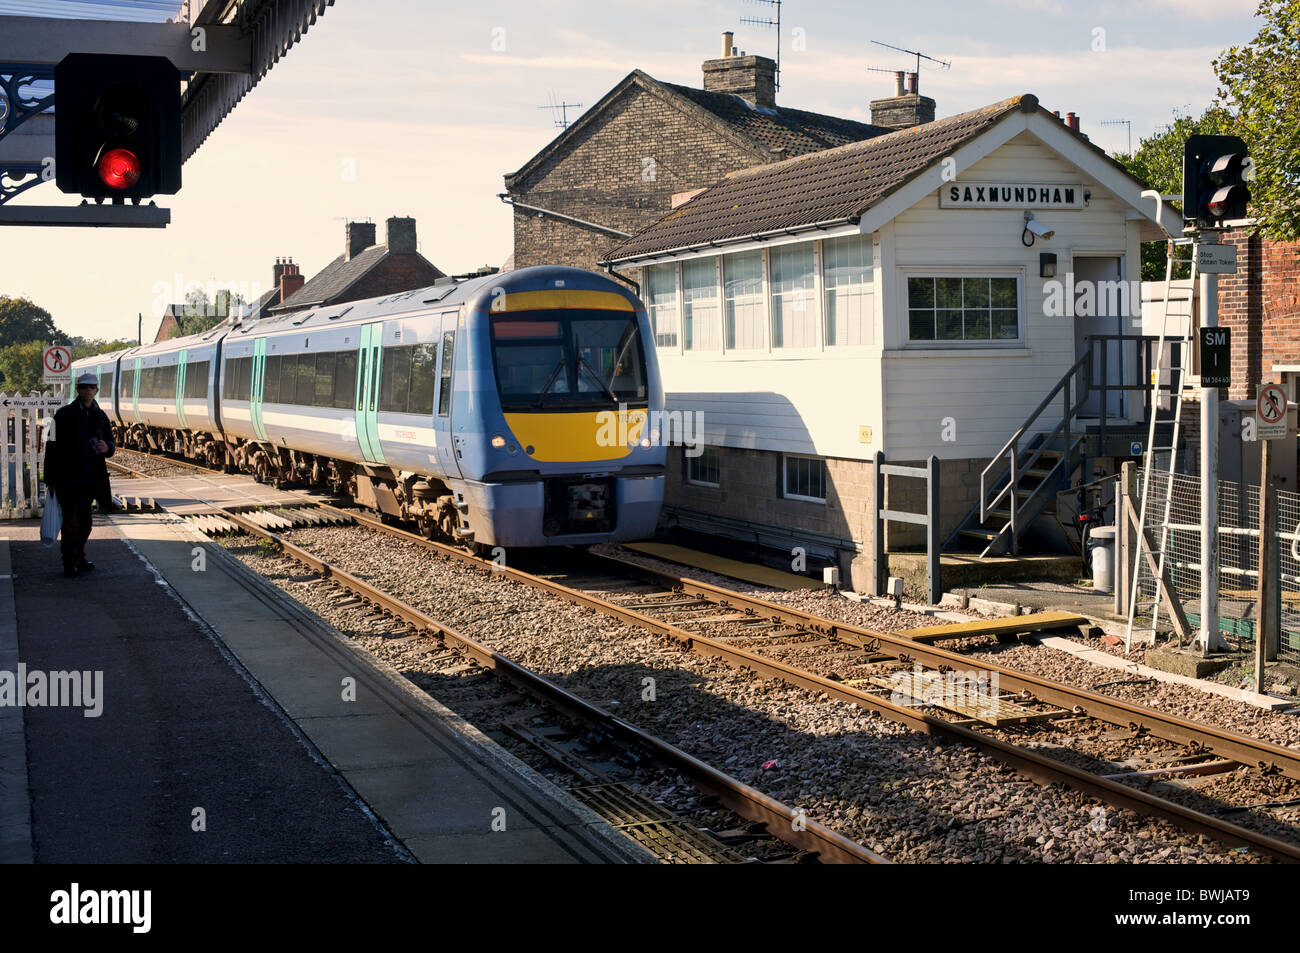 Saxmundham railway station on the 49-mile East Suffolk branch line between Ipswich and Lowestoft. - Stock Image